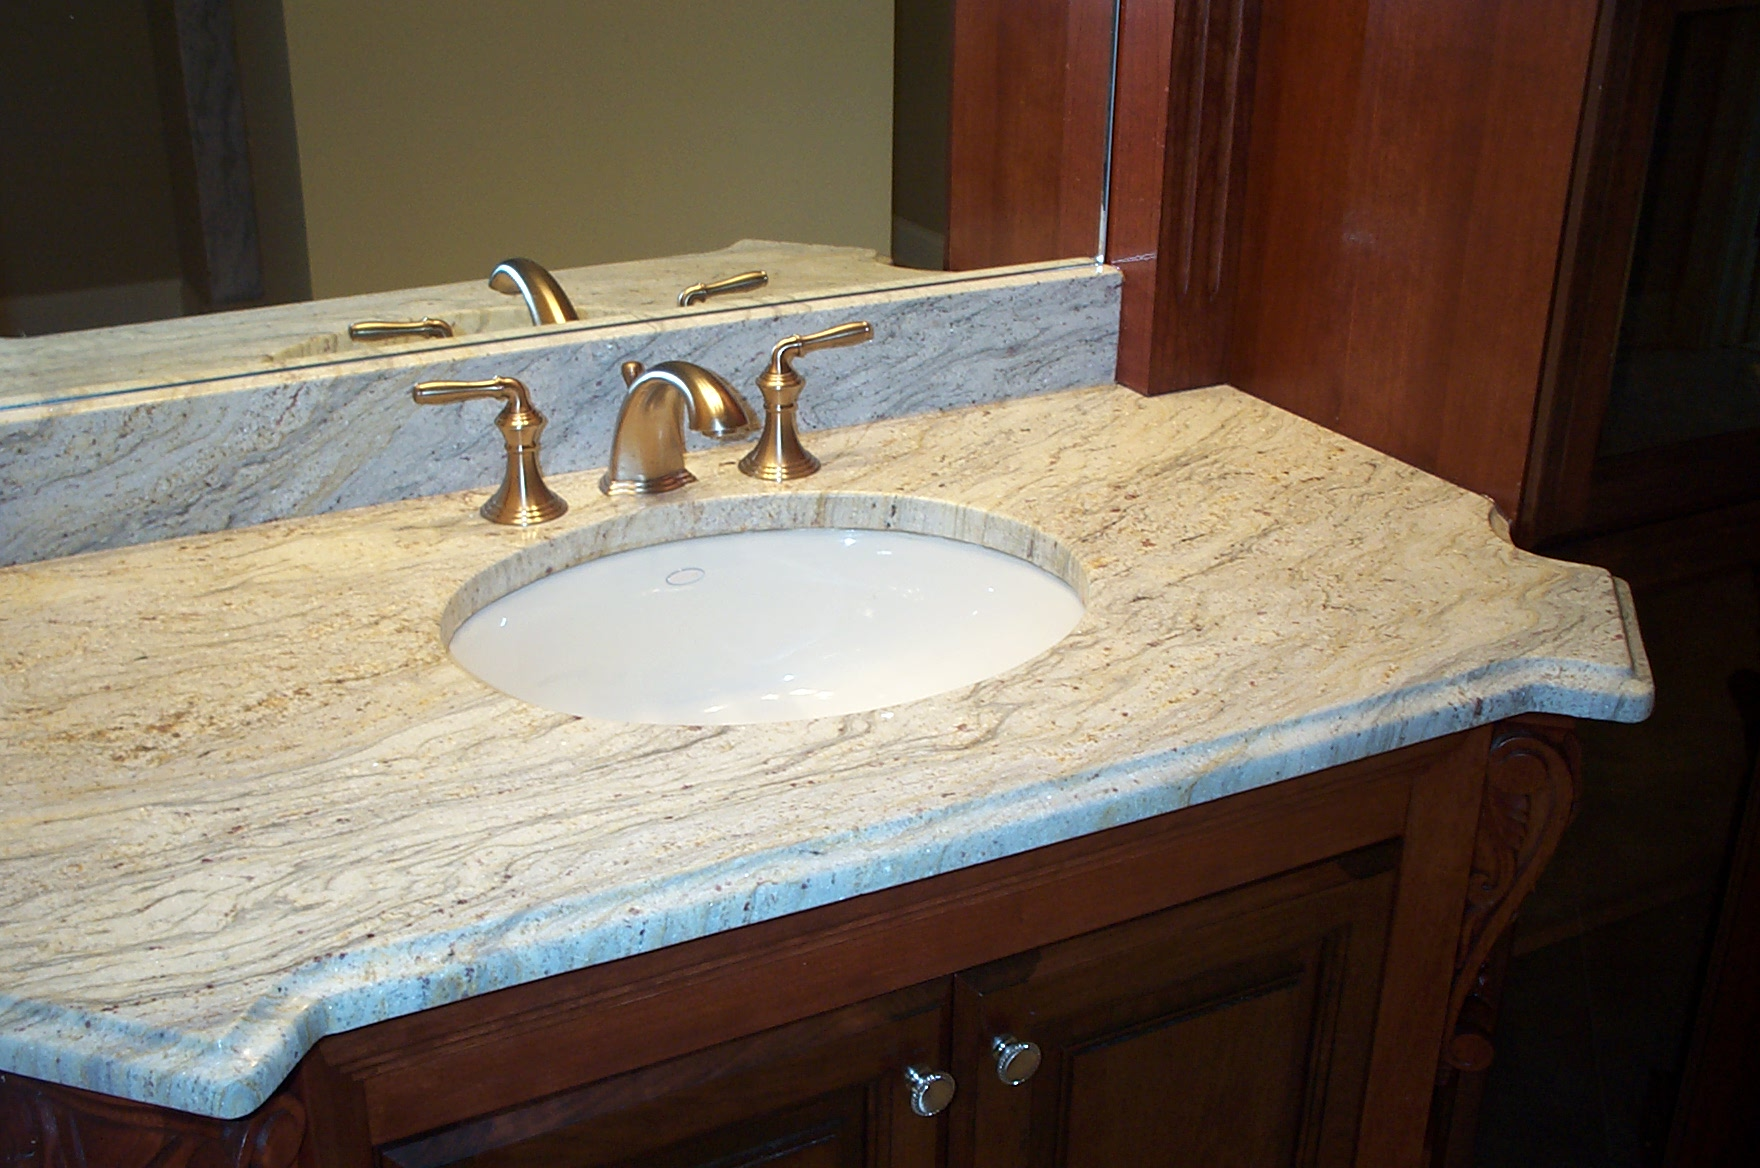 Chicago Il Bathroom Kitchen Remodeling Hardwood Floors Refinishing Granite Countertops Install